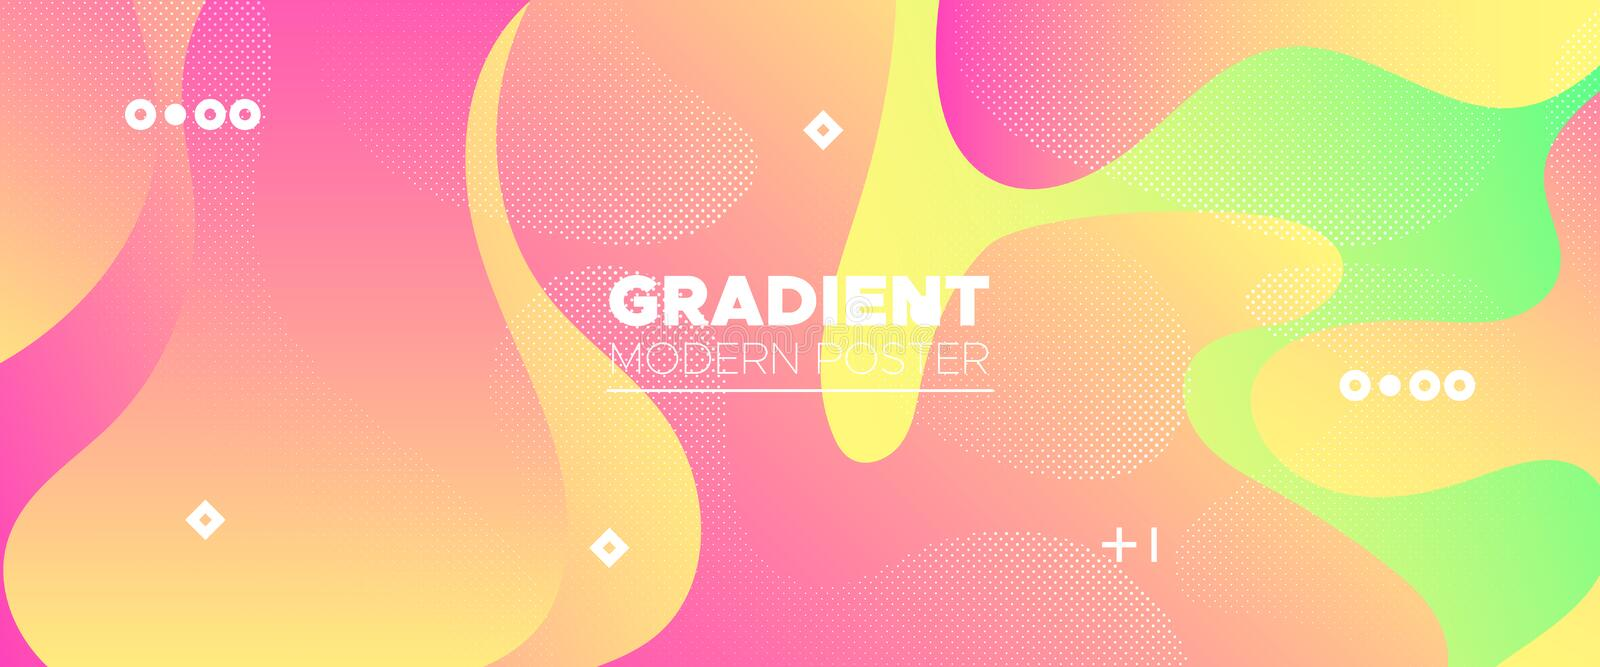 Abstract Flow Design. Red Gradient Brochure. Dotted Graphic Wallpaper. Futuristic Motion. Abstract Wave Shapes. Minimal Poster. Vector Illustration. Digital royalty free illustration